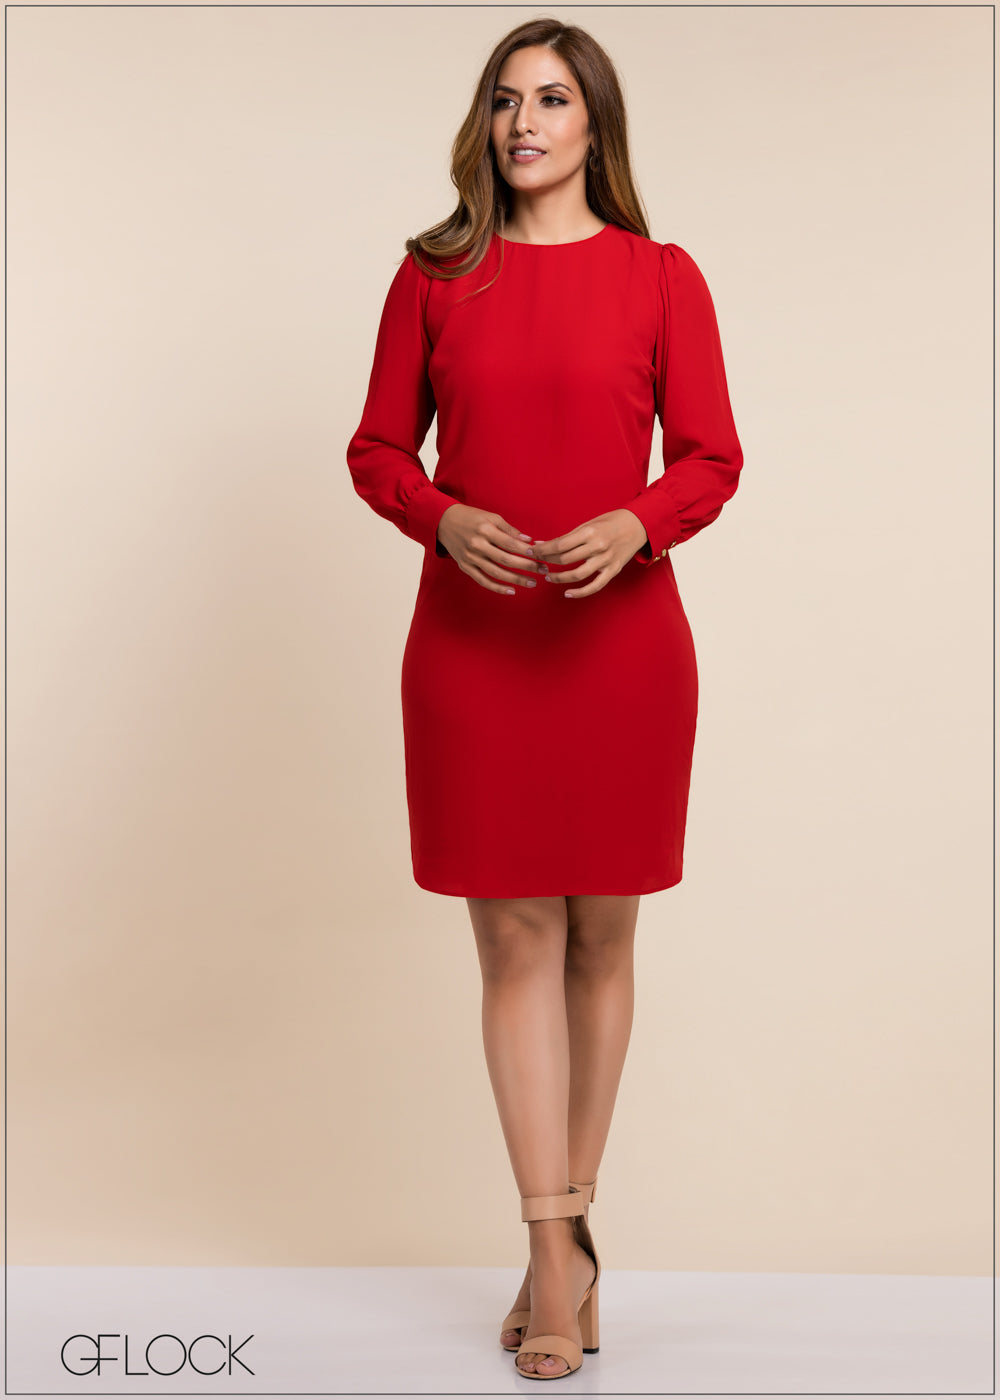 Long Sleeve Workwear Dress - GFLOCK.LK